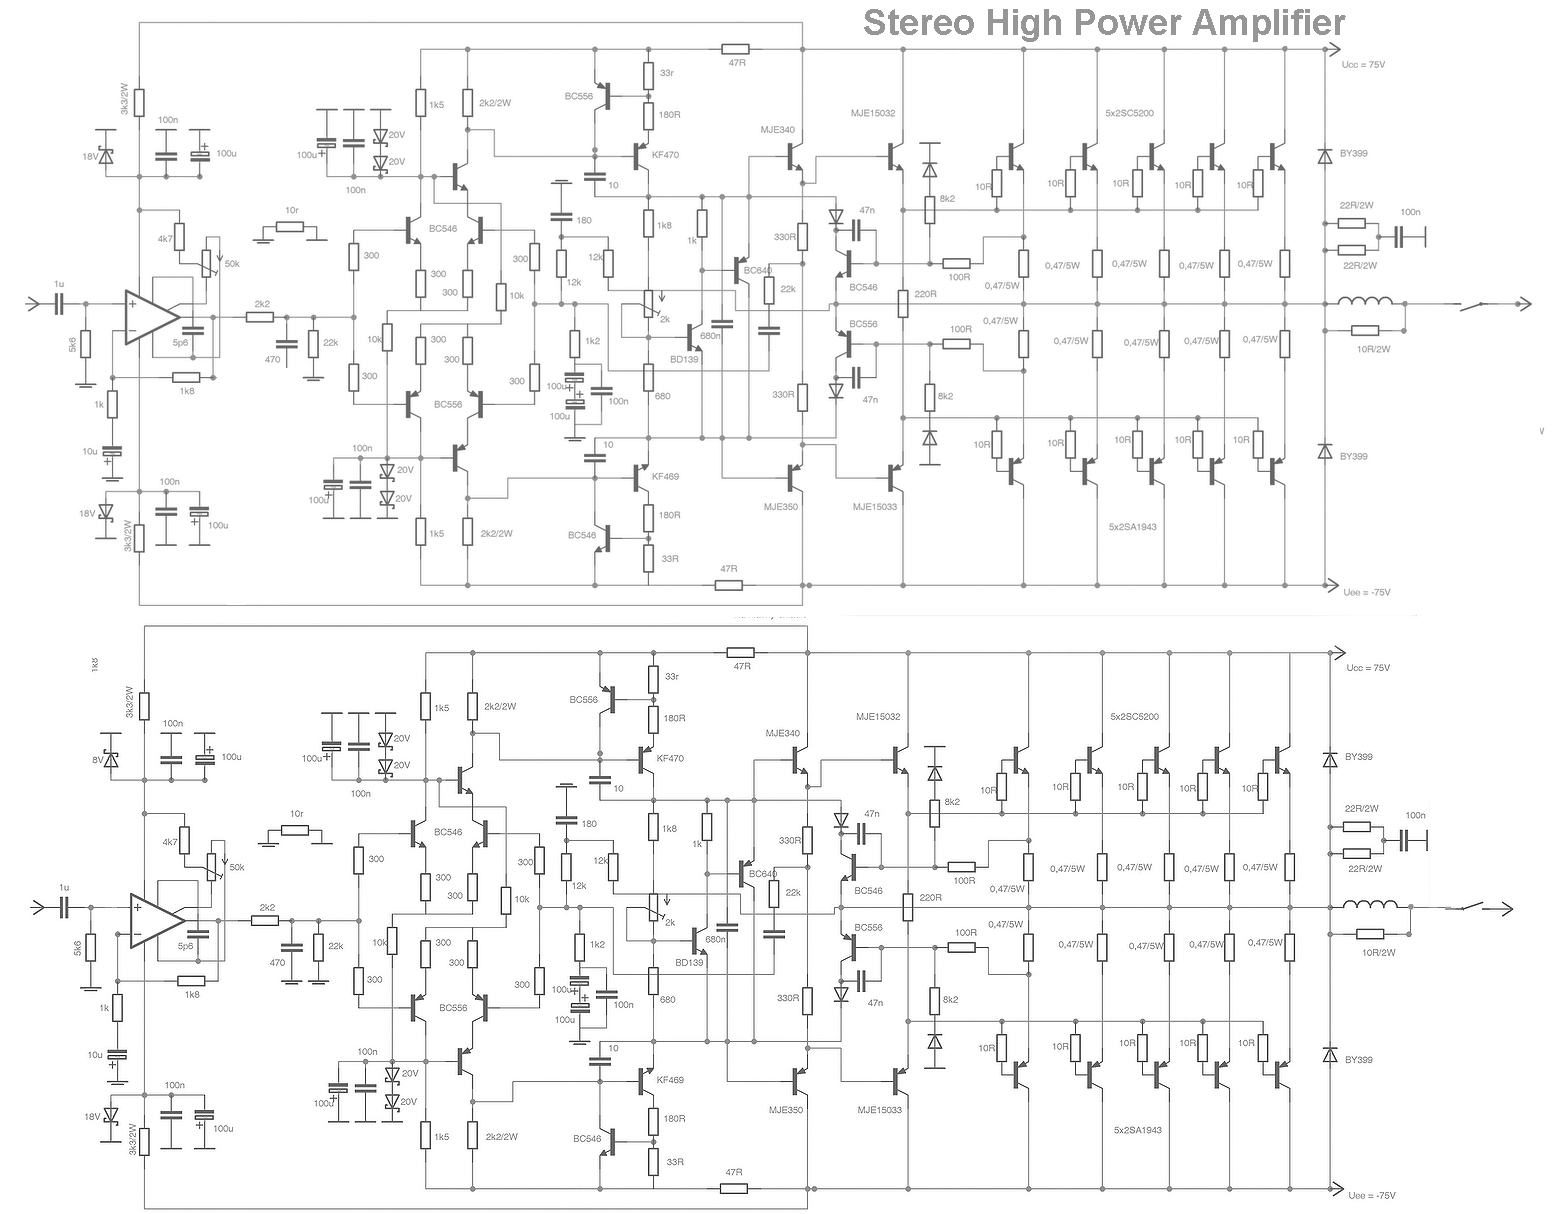 High Voltage Circuit Diagram Square D Air Compressor Pressure Switch Wiring Stereo Power Audio Amplifier Diy